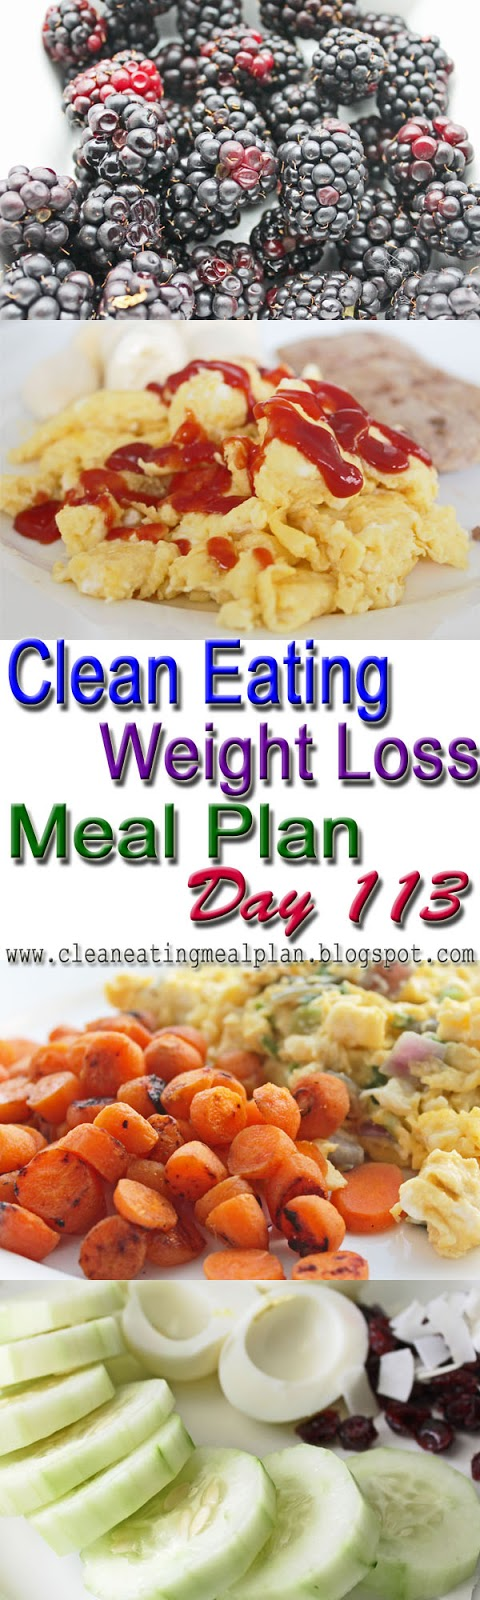 clean eating meal plan